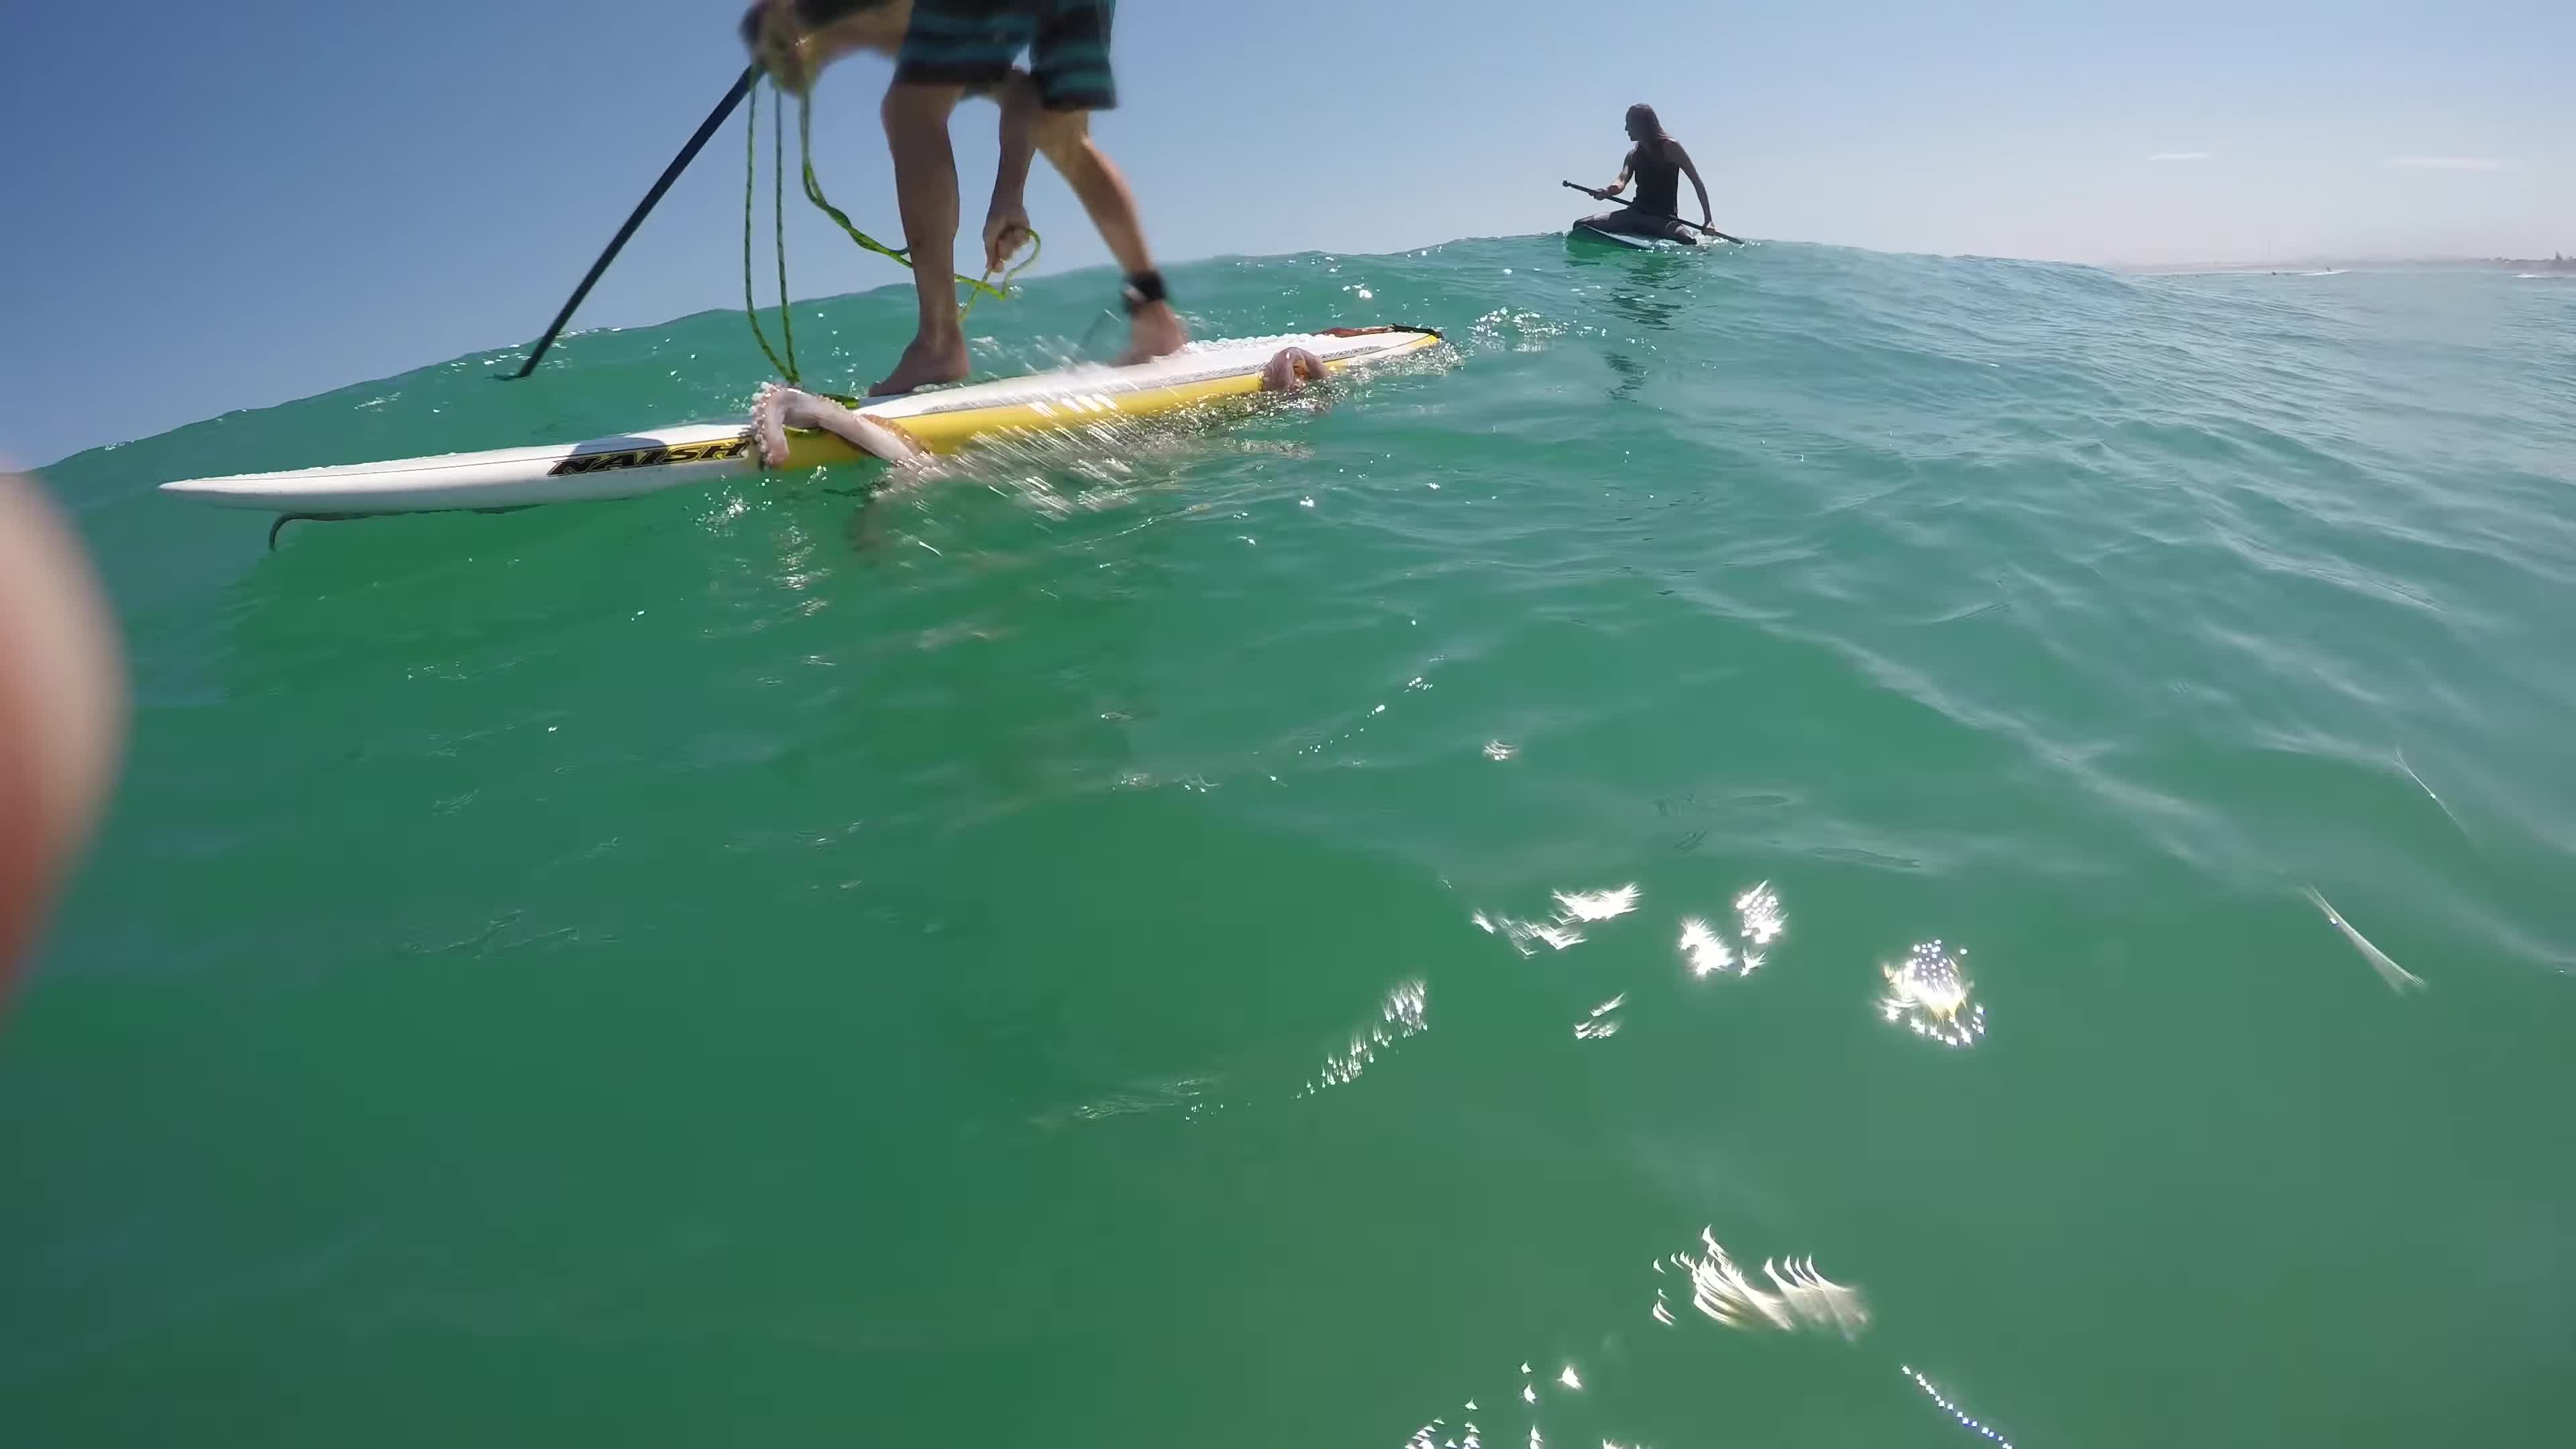 amazing, cape town, giant squid, incredible, melkbosstrand, ocean, paddle board, sup, surf, weird animals, Giant squid wraps its tentacles around my paddle board! GIFs